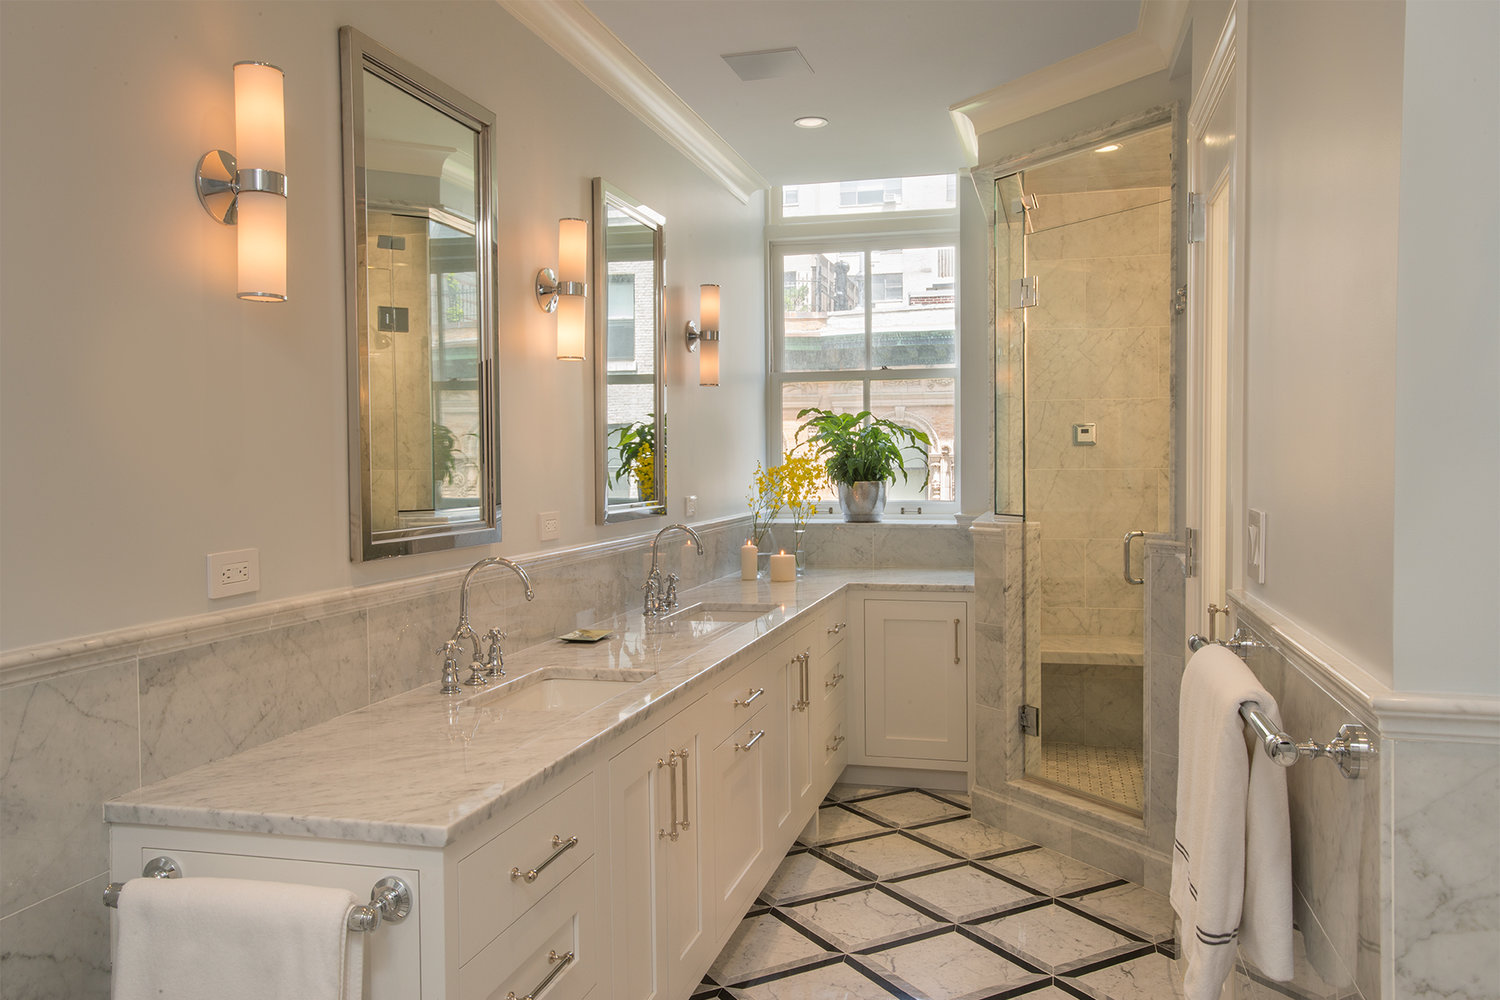 Bathroom Kitchen Remodeling Greenwich CT Westchester County NY - Bathroom remodeling westchester ny